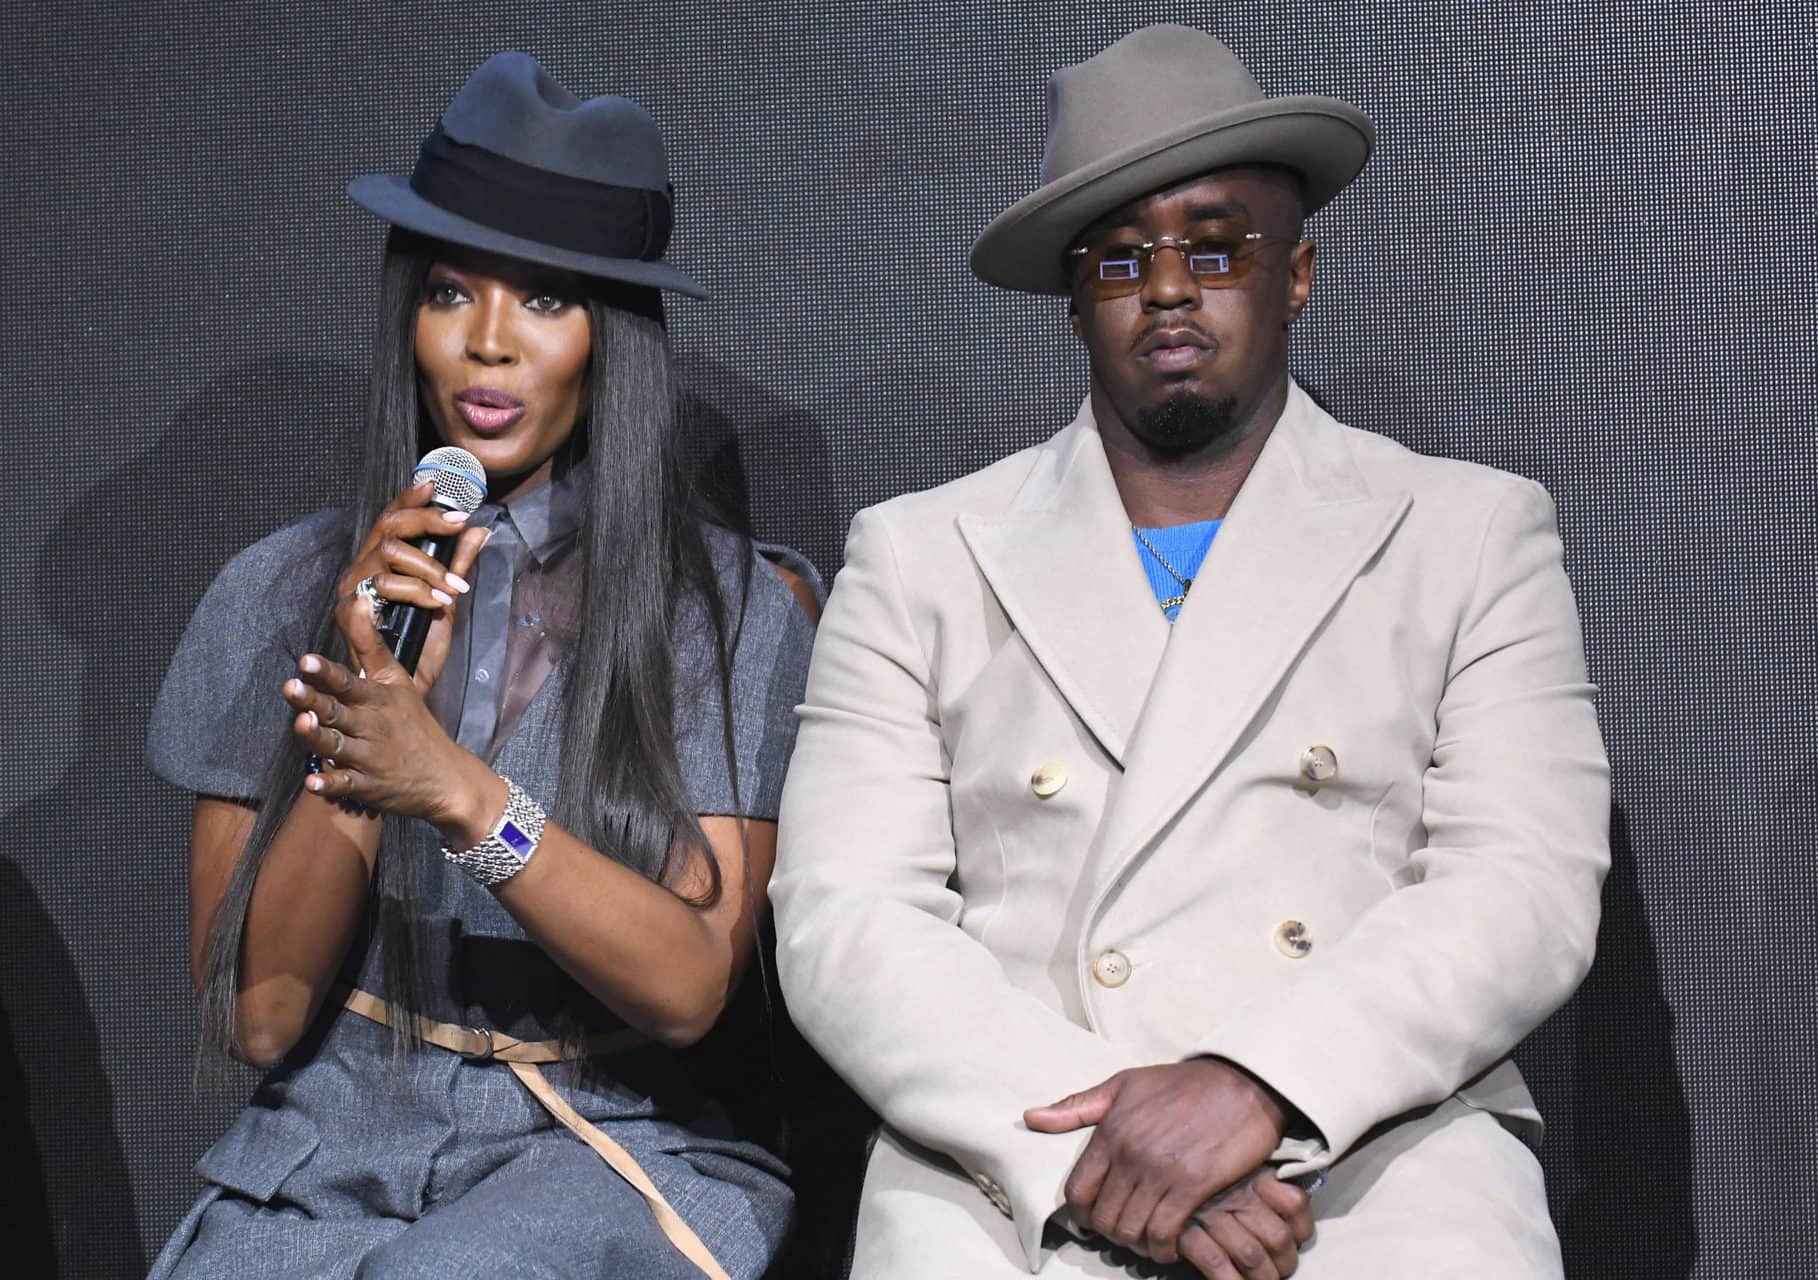 NEW YORK, NY - NOVEMBER 10:  Naomi Campbell and Sean 'Diddy' Combs speak on stage during the Pirelli Calendar 2018 launch press conference at The Pierre Hotel on November 10, 2017 in New York City.  (Photo by Gary Gershoff/WireImage)